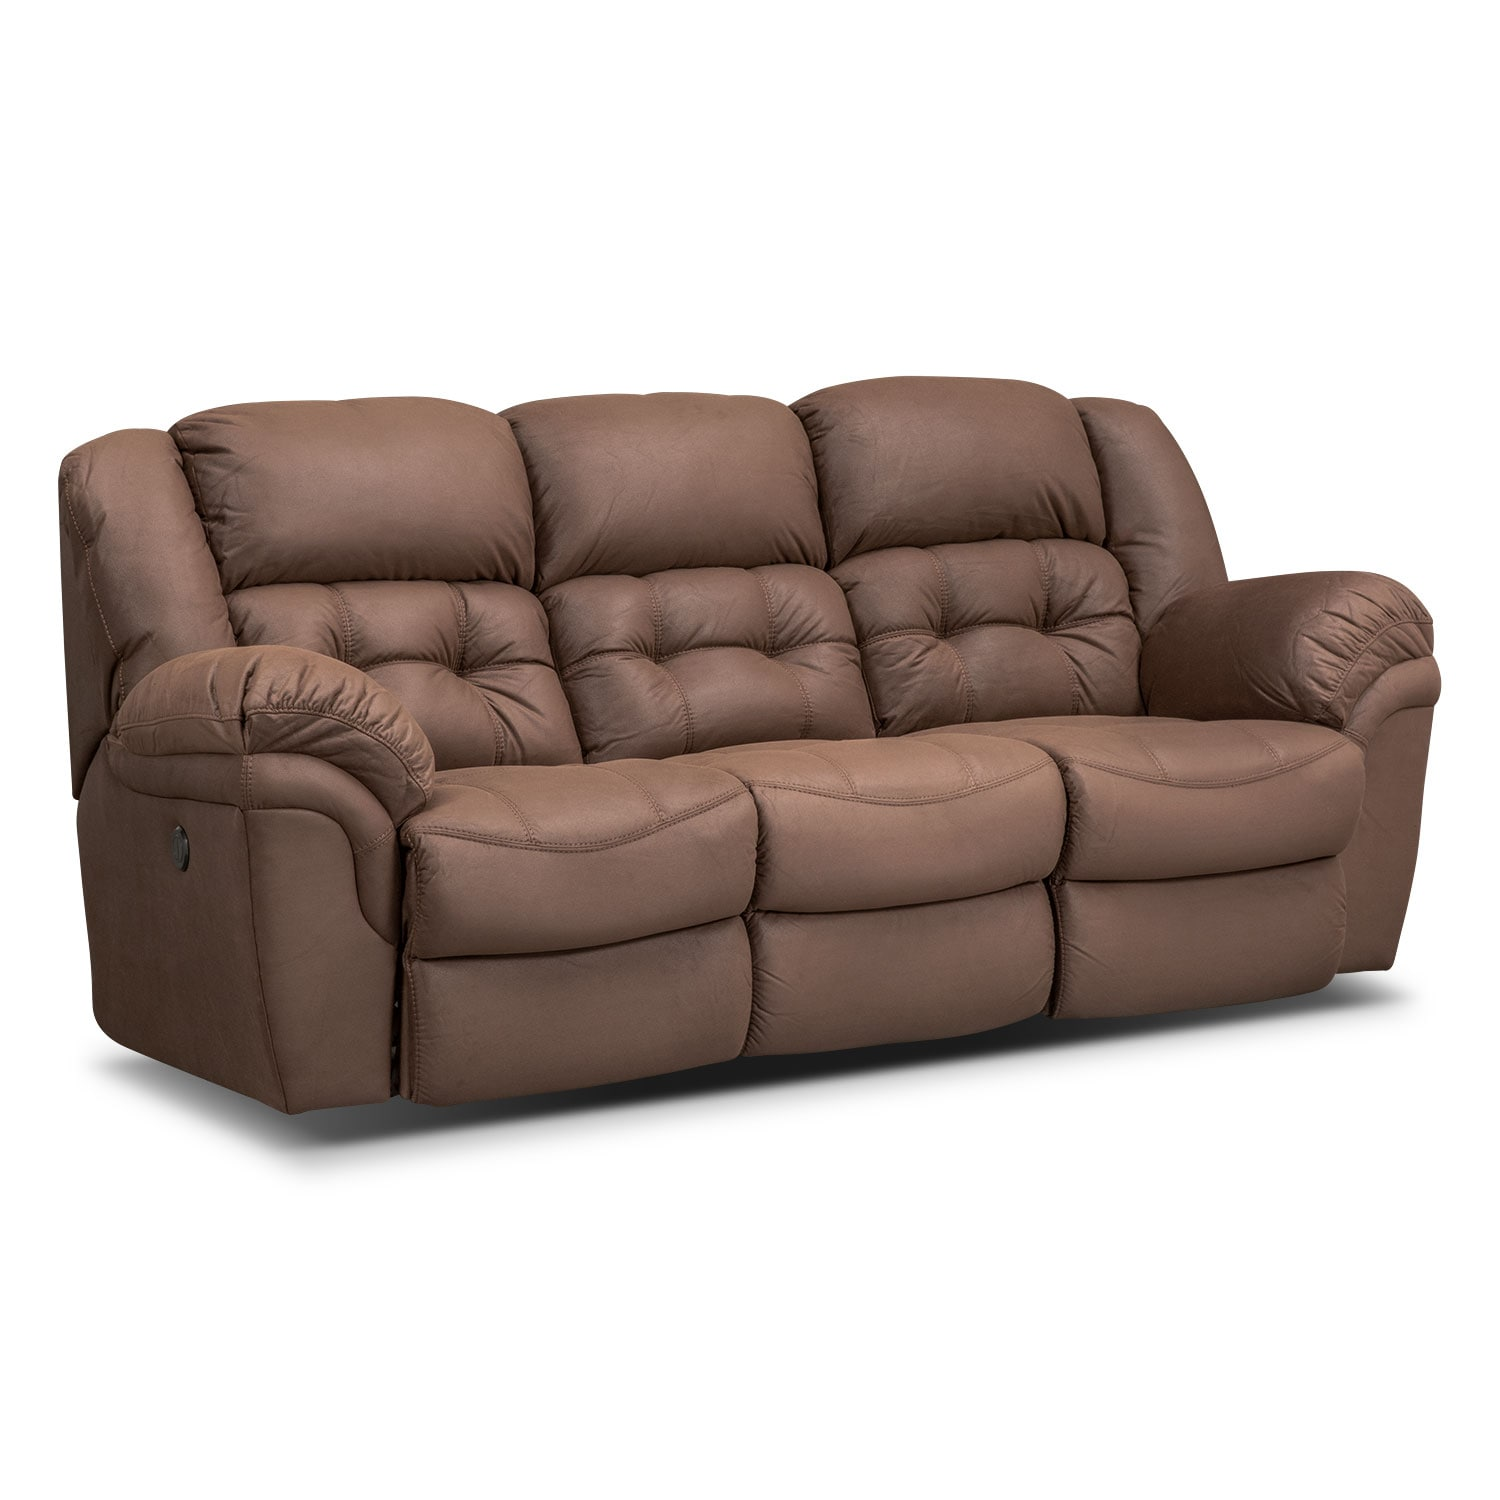 Living Room Furniture - Lancer Power Reclining Sofa - Chocolate